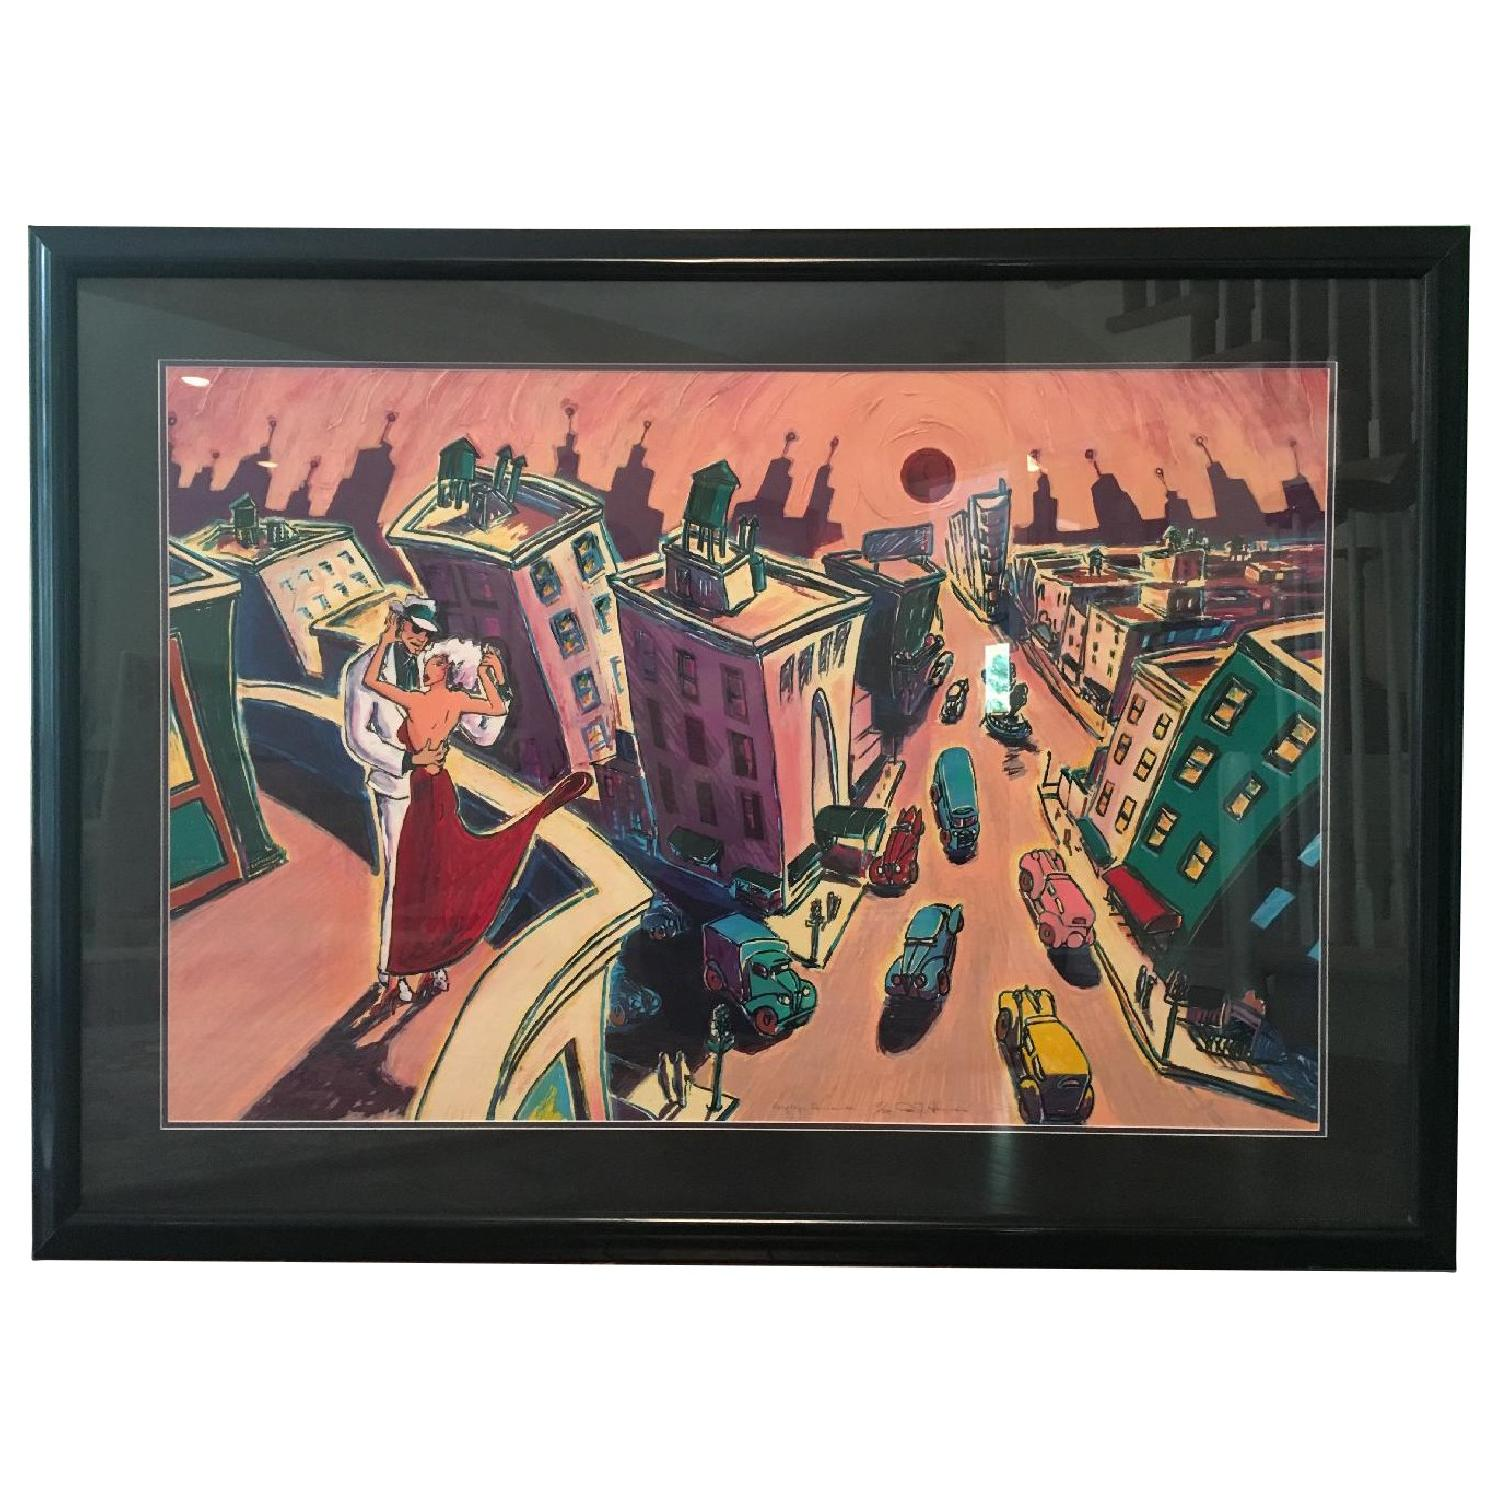 RJ Hohimer Rooftop Romance Signed Painting 135 of 300 - image-0